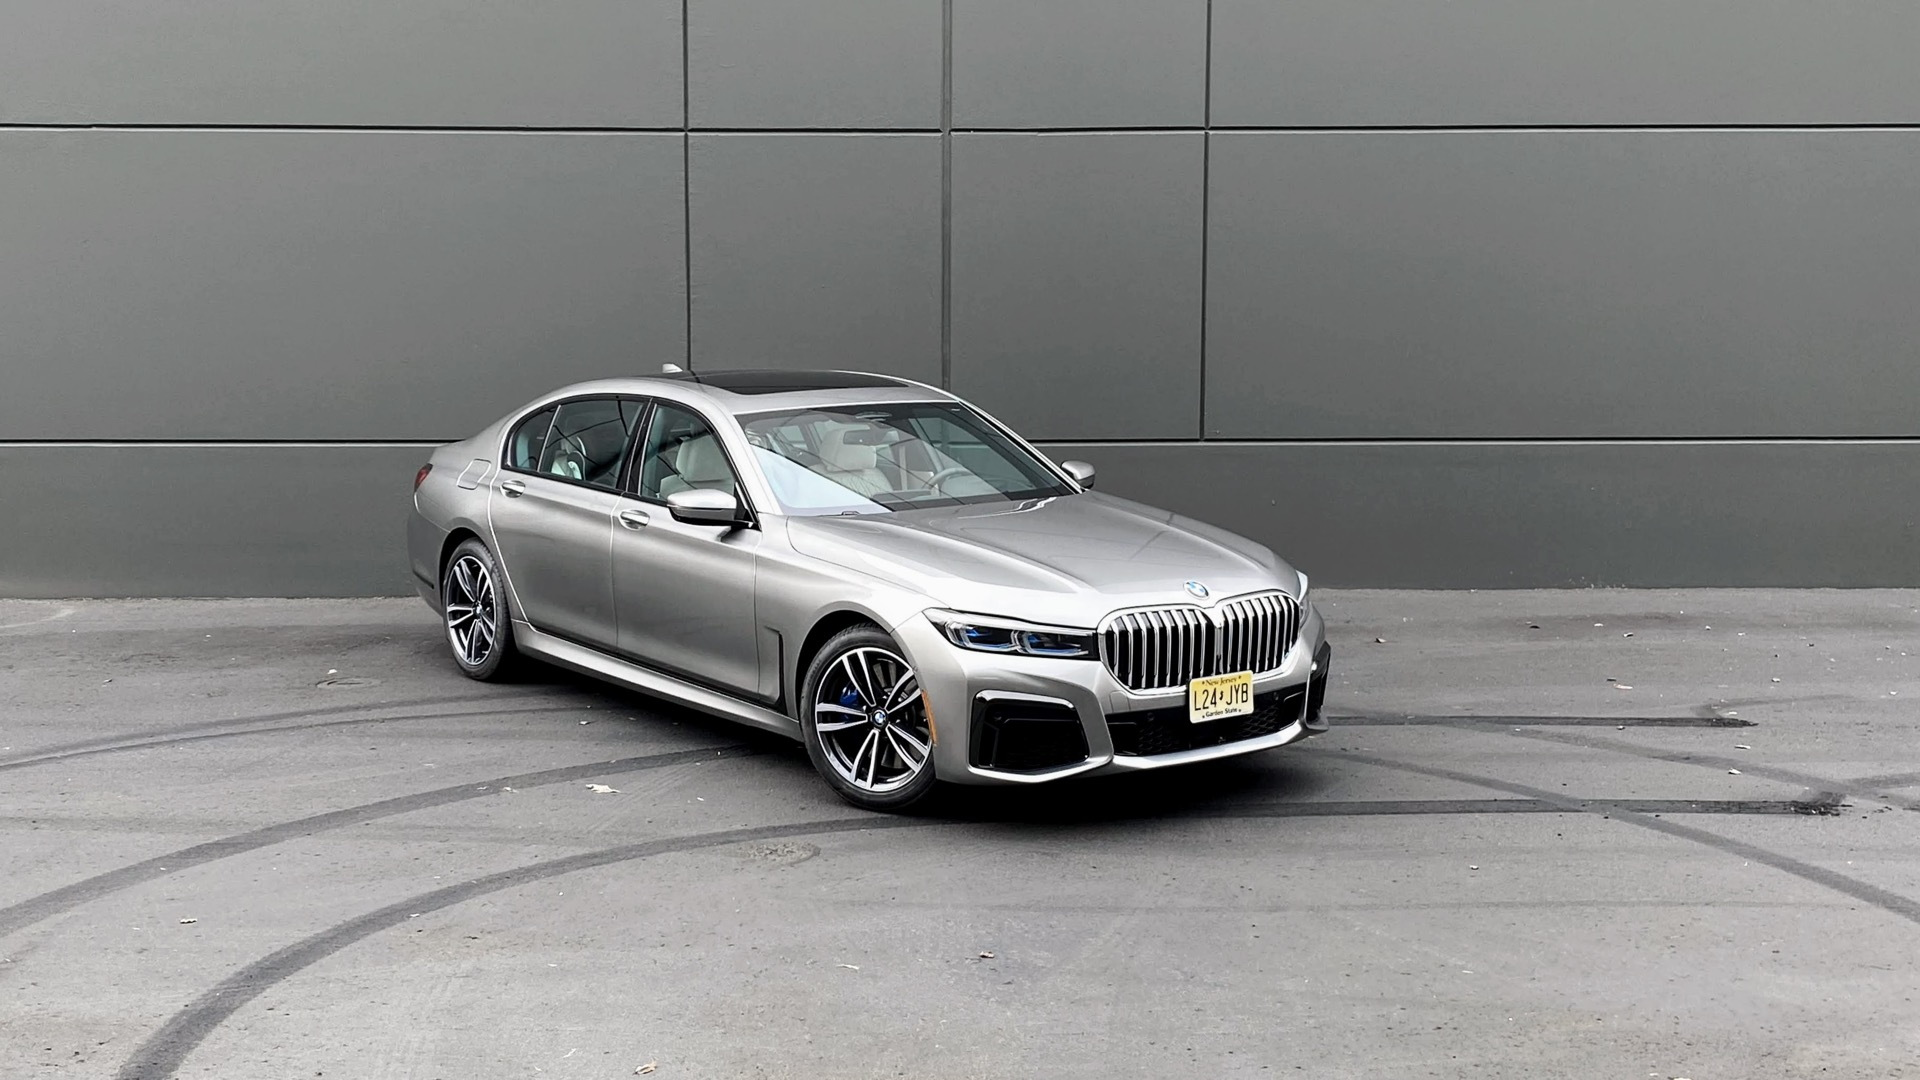 2020 BMW 745e xDrive  -  drive review